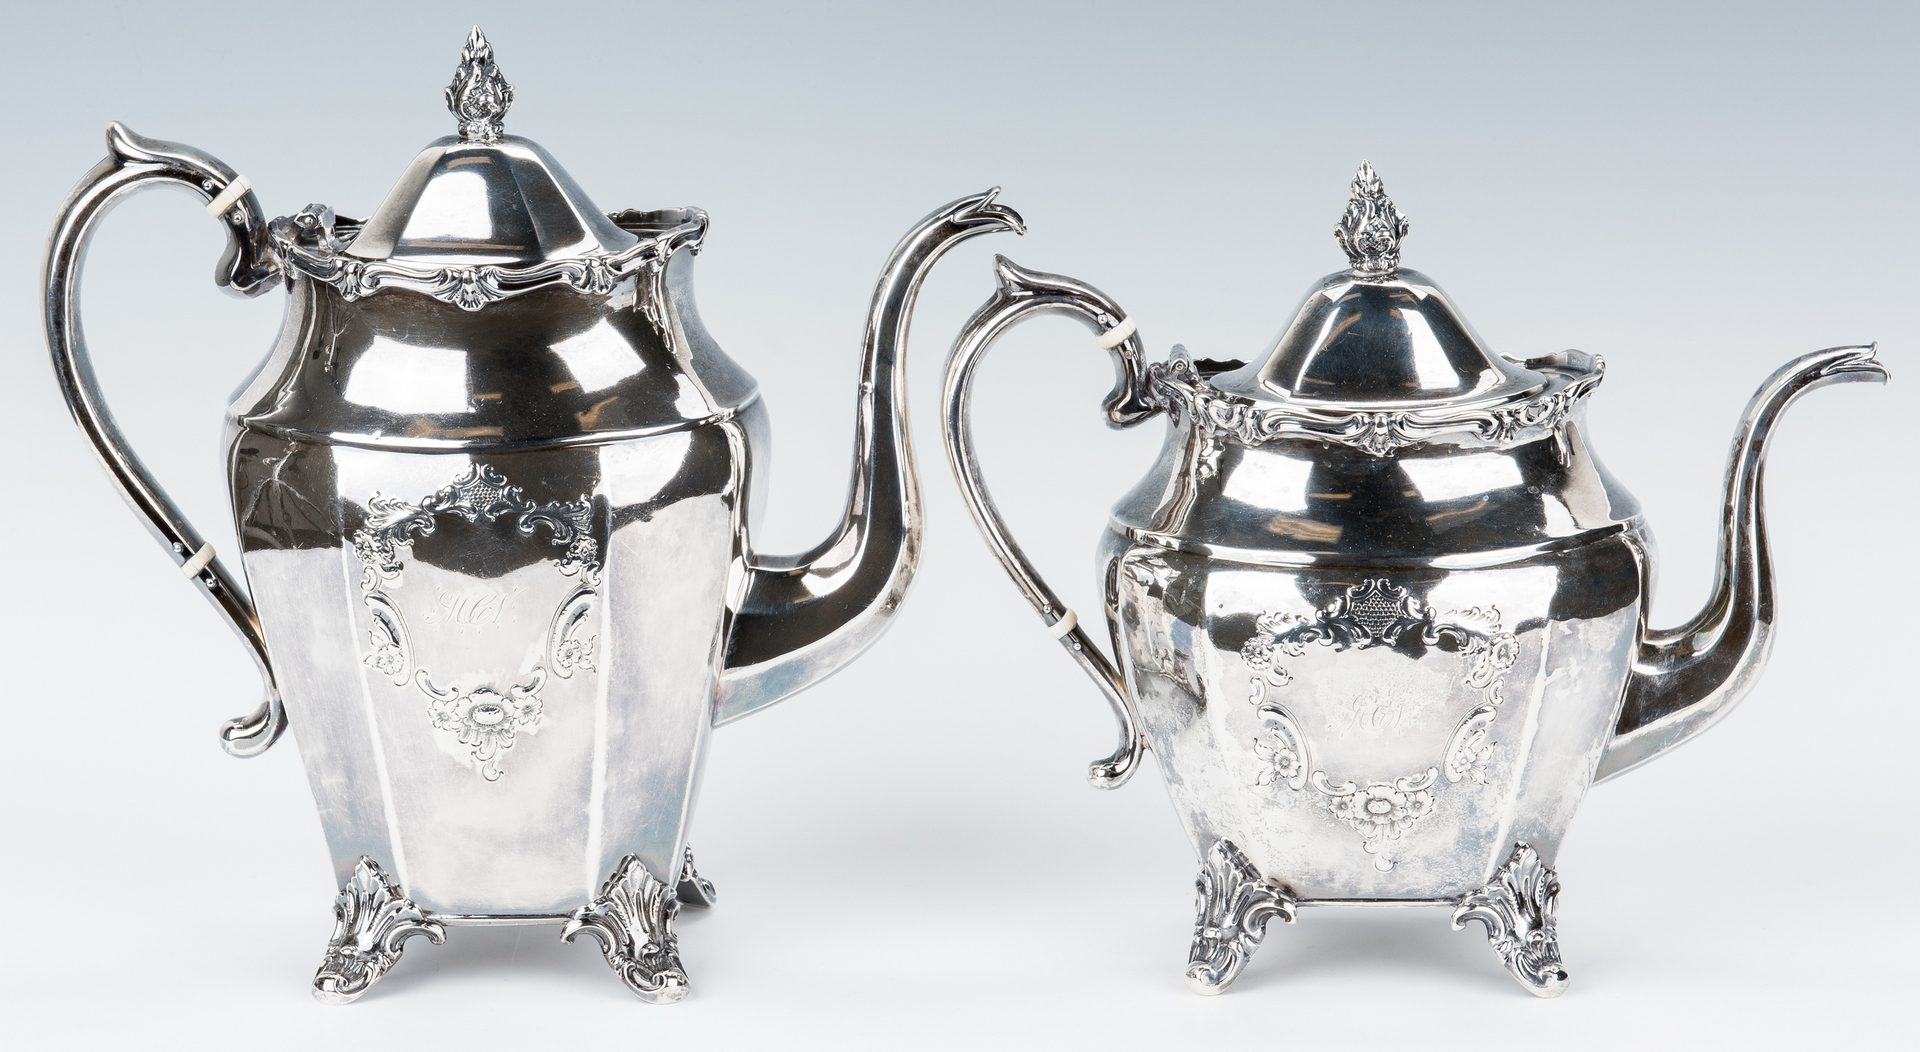 Lot 186: 4 Pc. Coin Silver Tea Service, TN Retailed